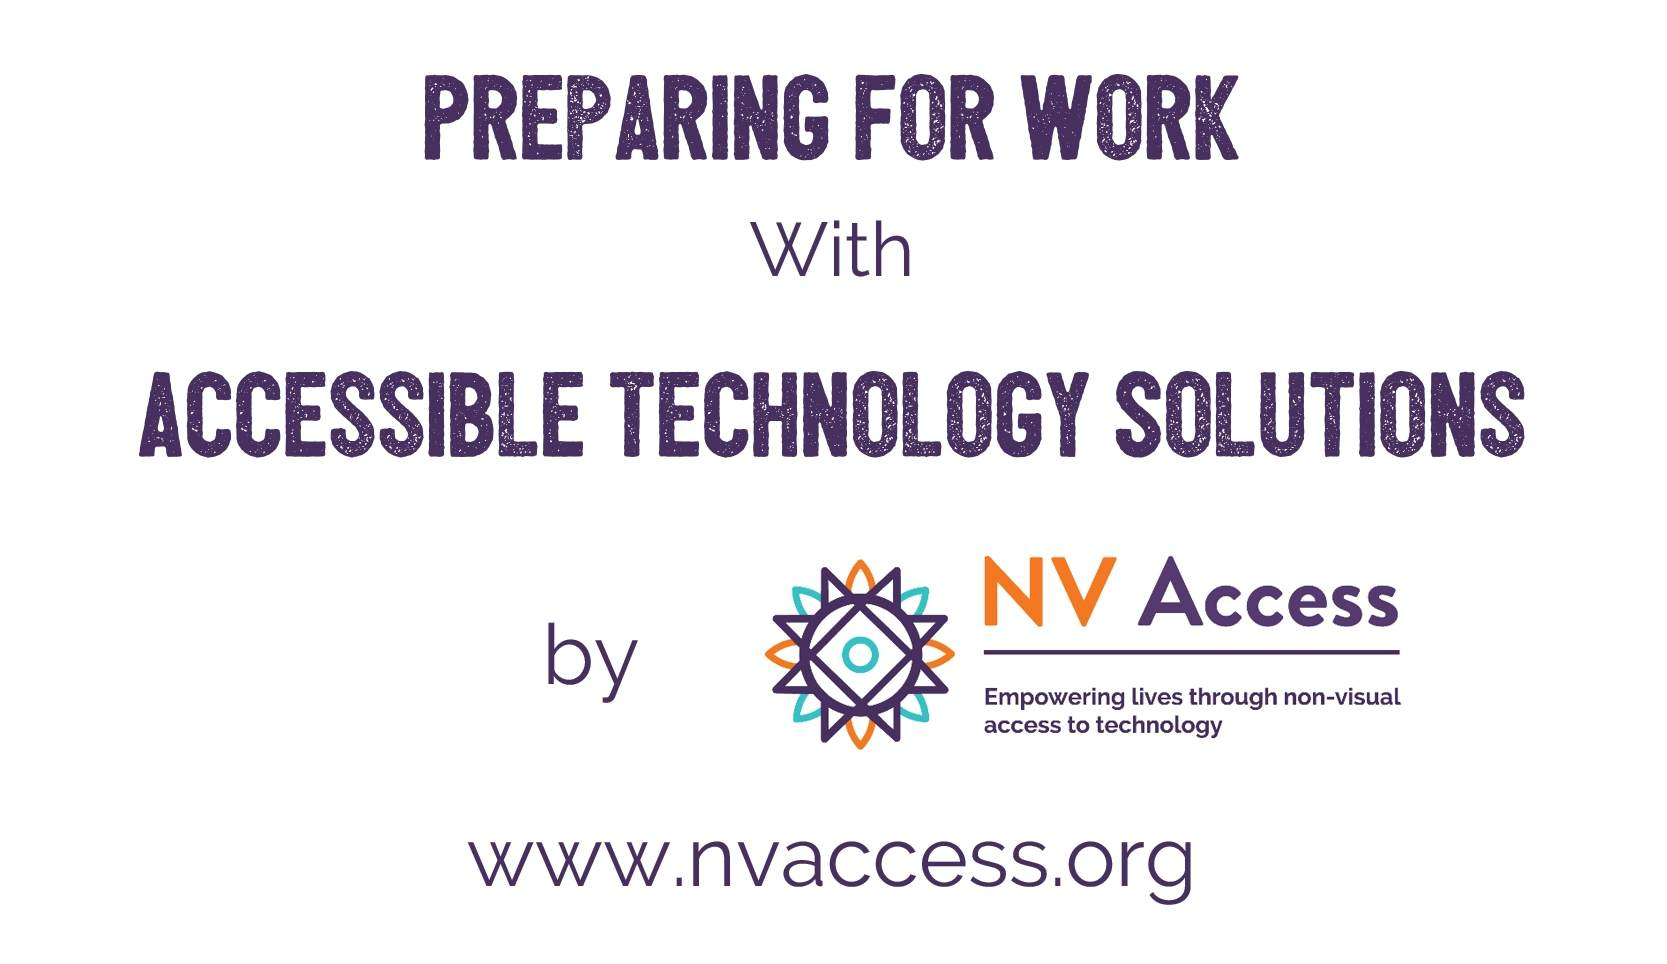 Preparing for Work with Accessible Technology Solutions